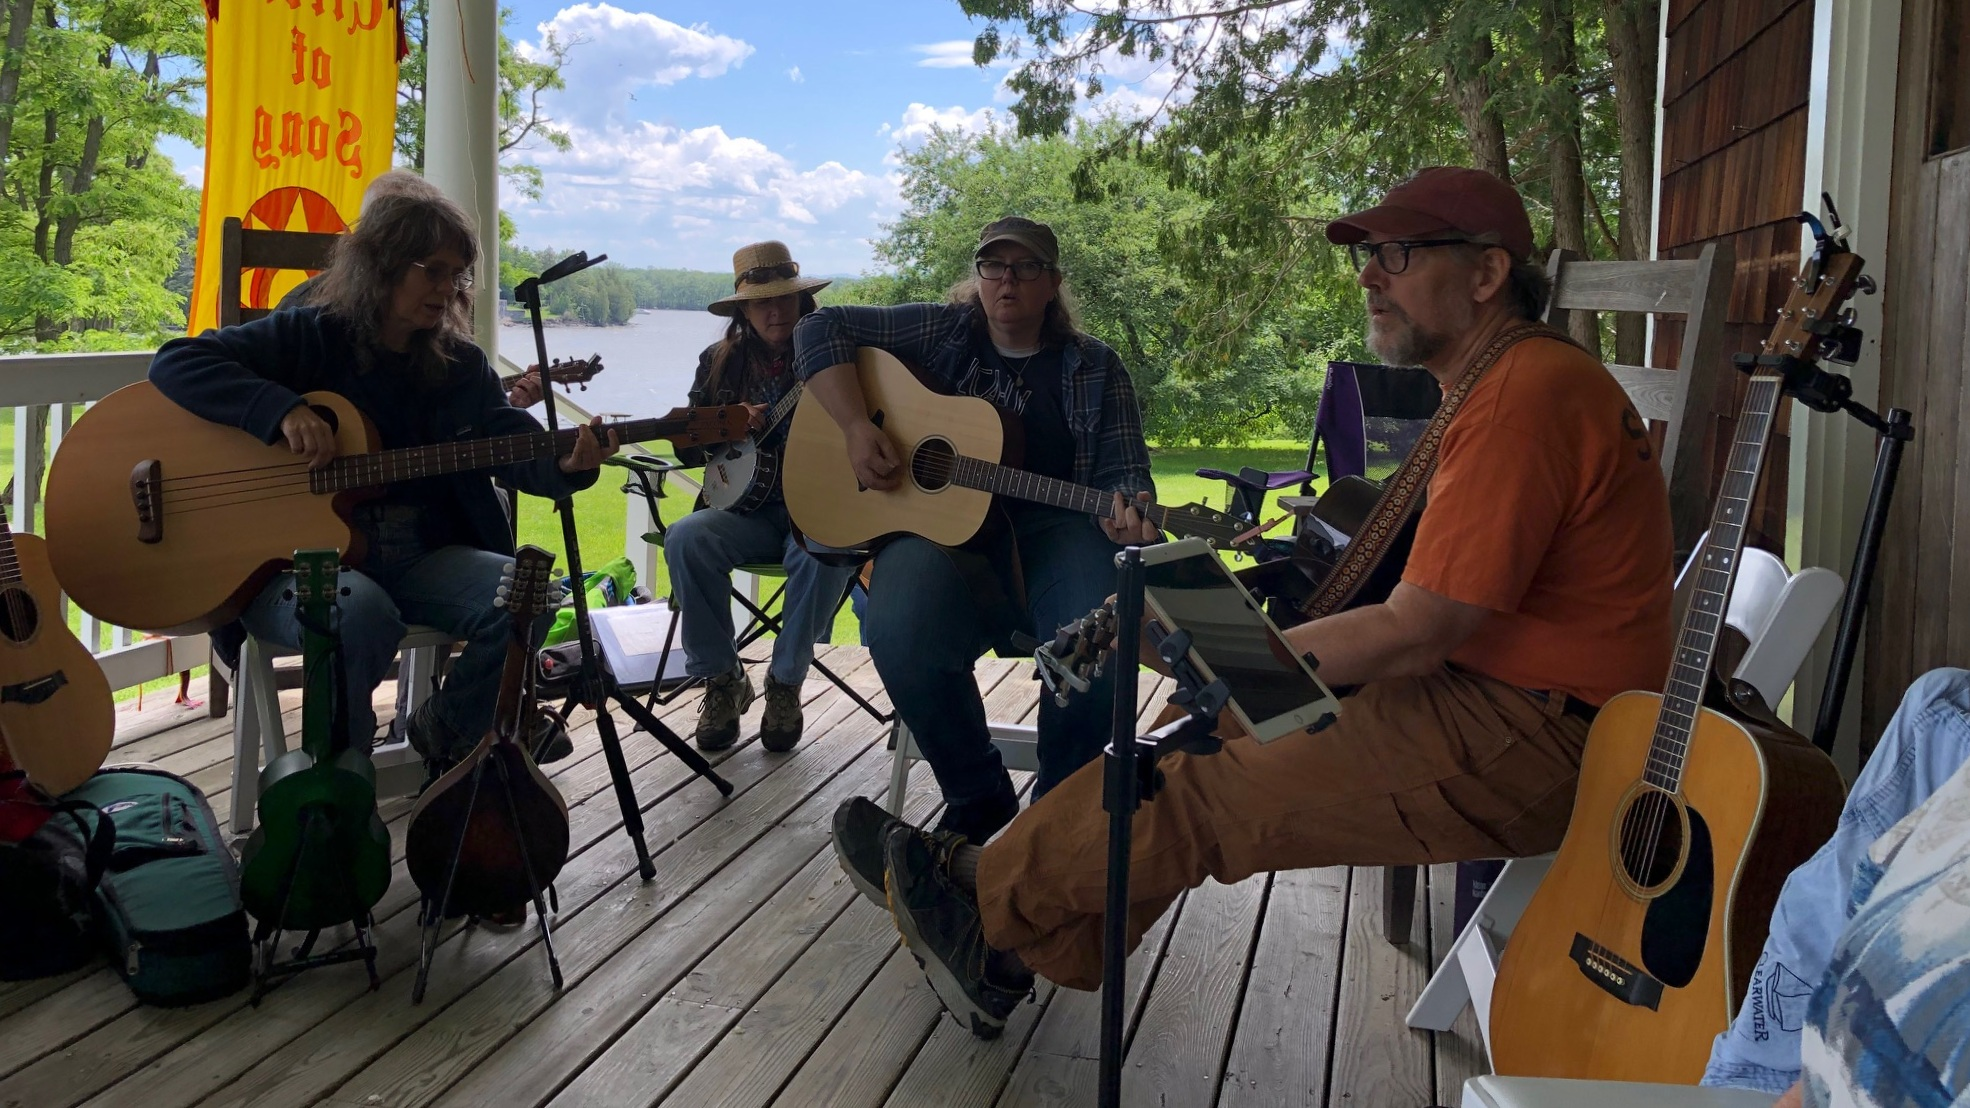 Musicians at Kingsland Bay share a song on the porch.